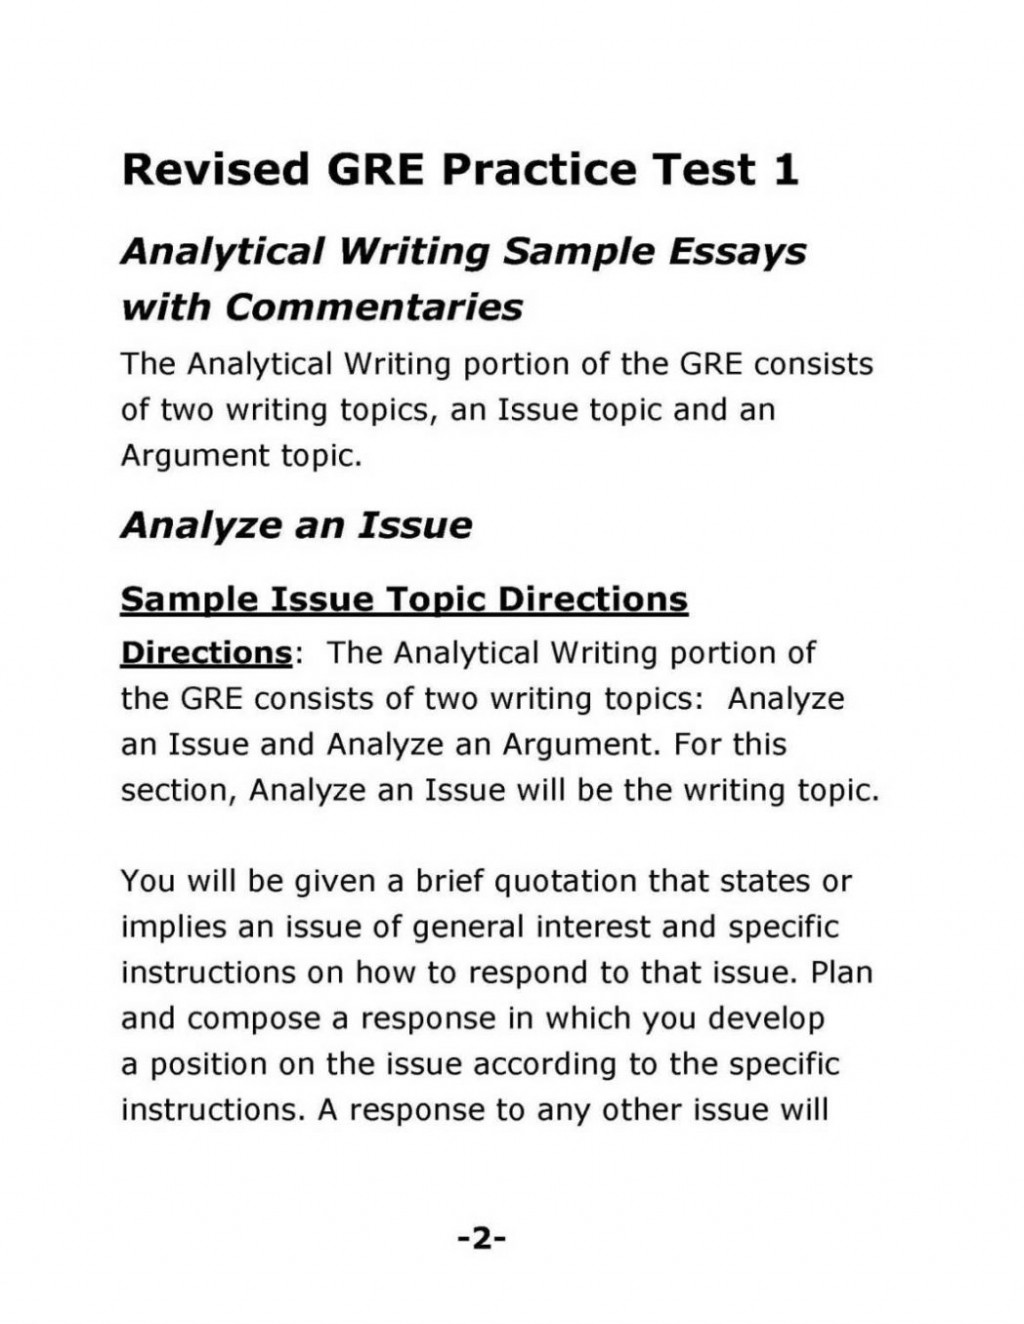 007 Essay Example Argumentative Analysis Topics Thesis For Literary Gre Questions List Sample Test Papers With Soluti Real Pool Issue Common Answers To Pdf Argument And 1048x1356 Fantastic Prompts Analytical Writing Large